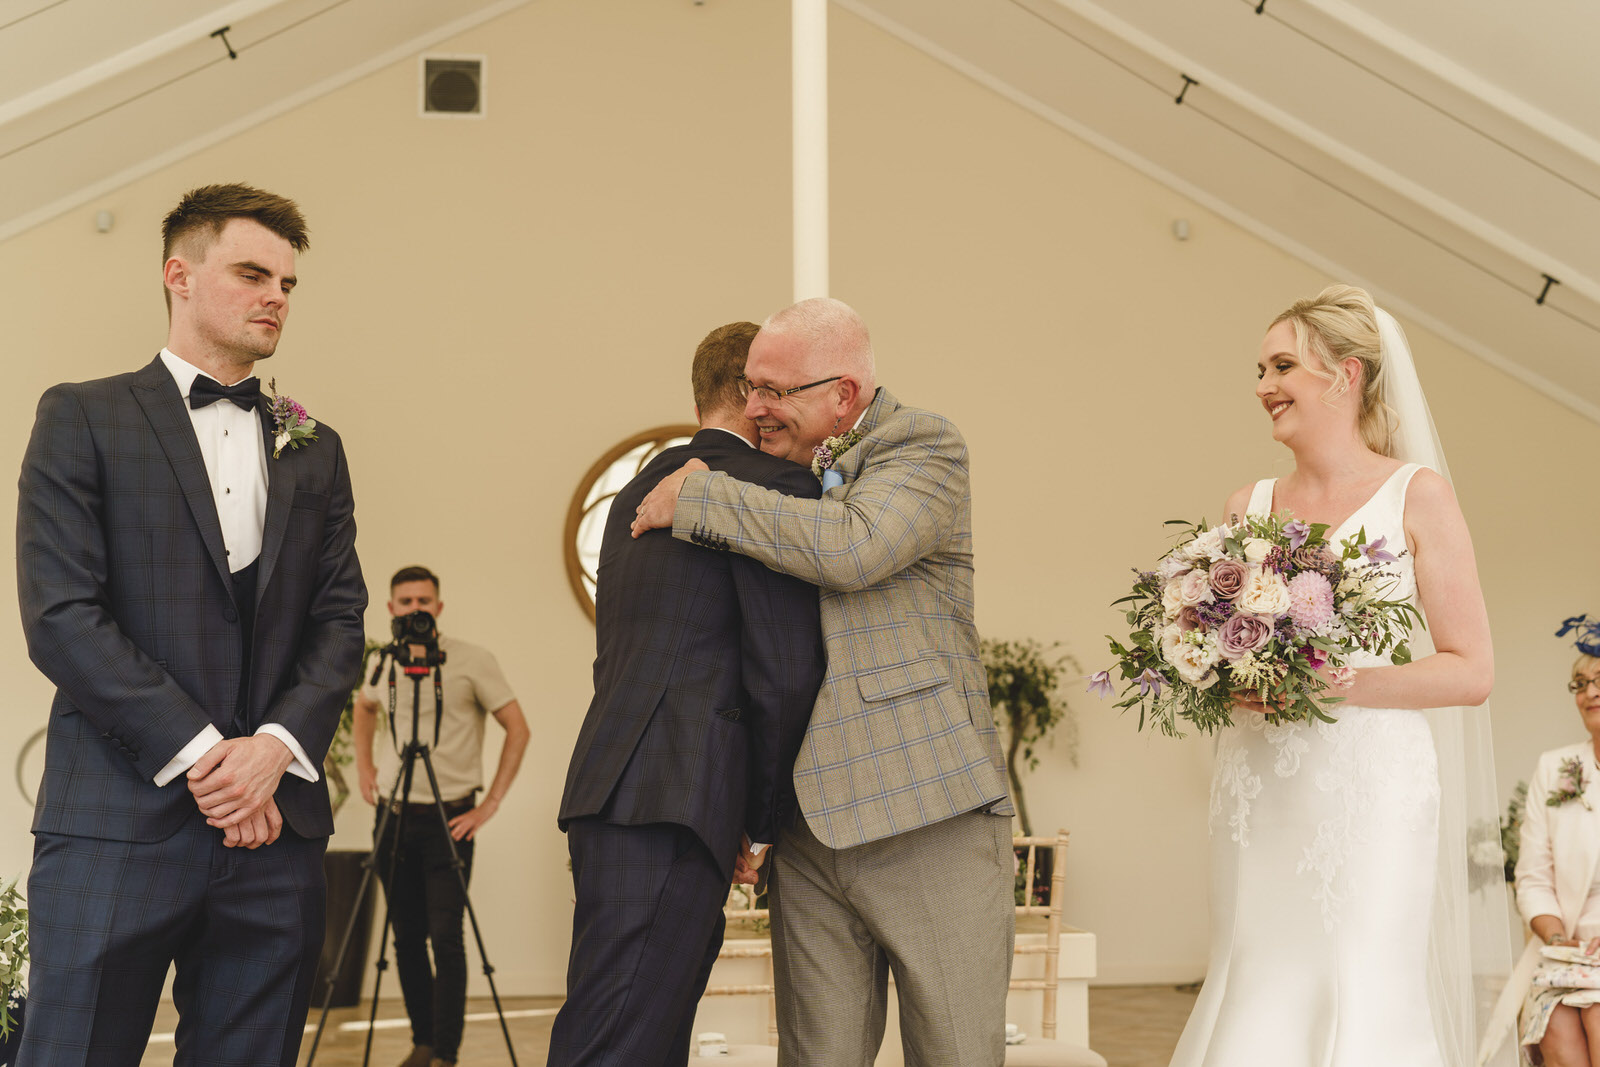 the father of the bride and the groom share a hug